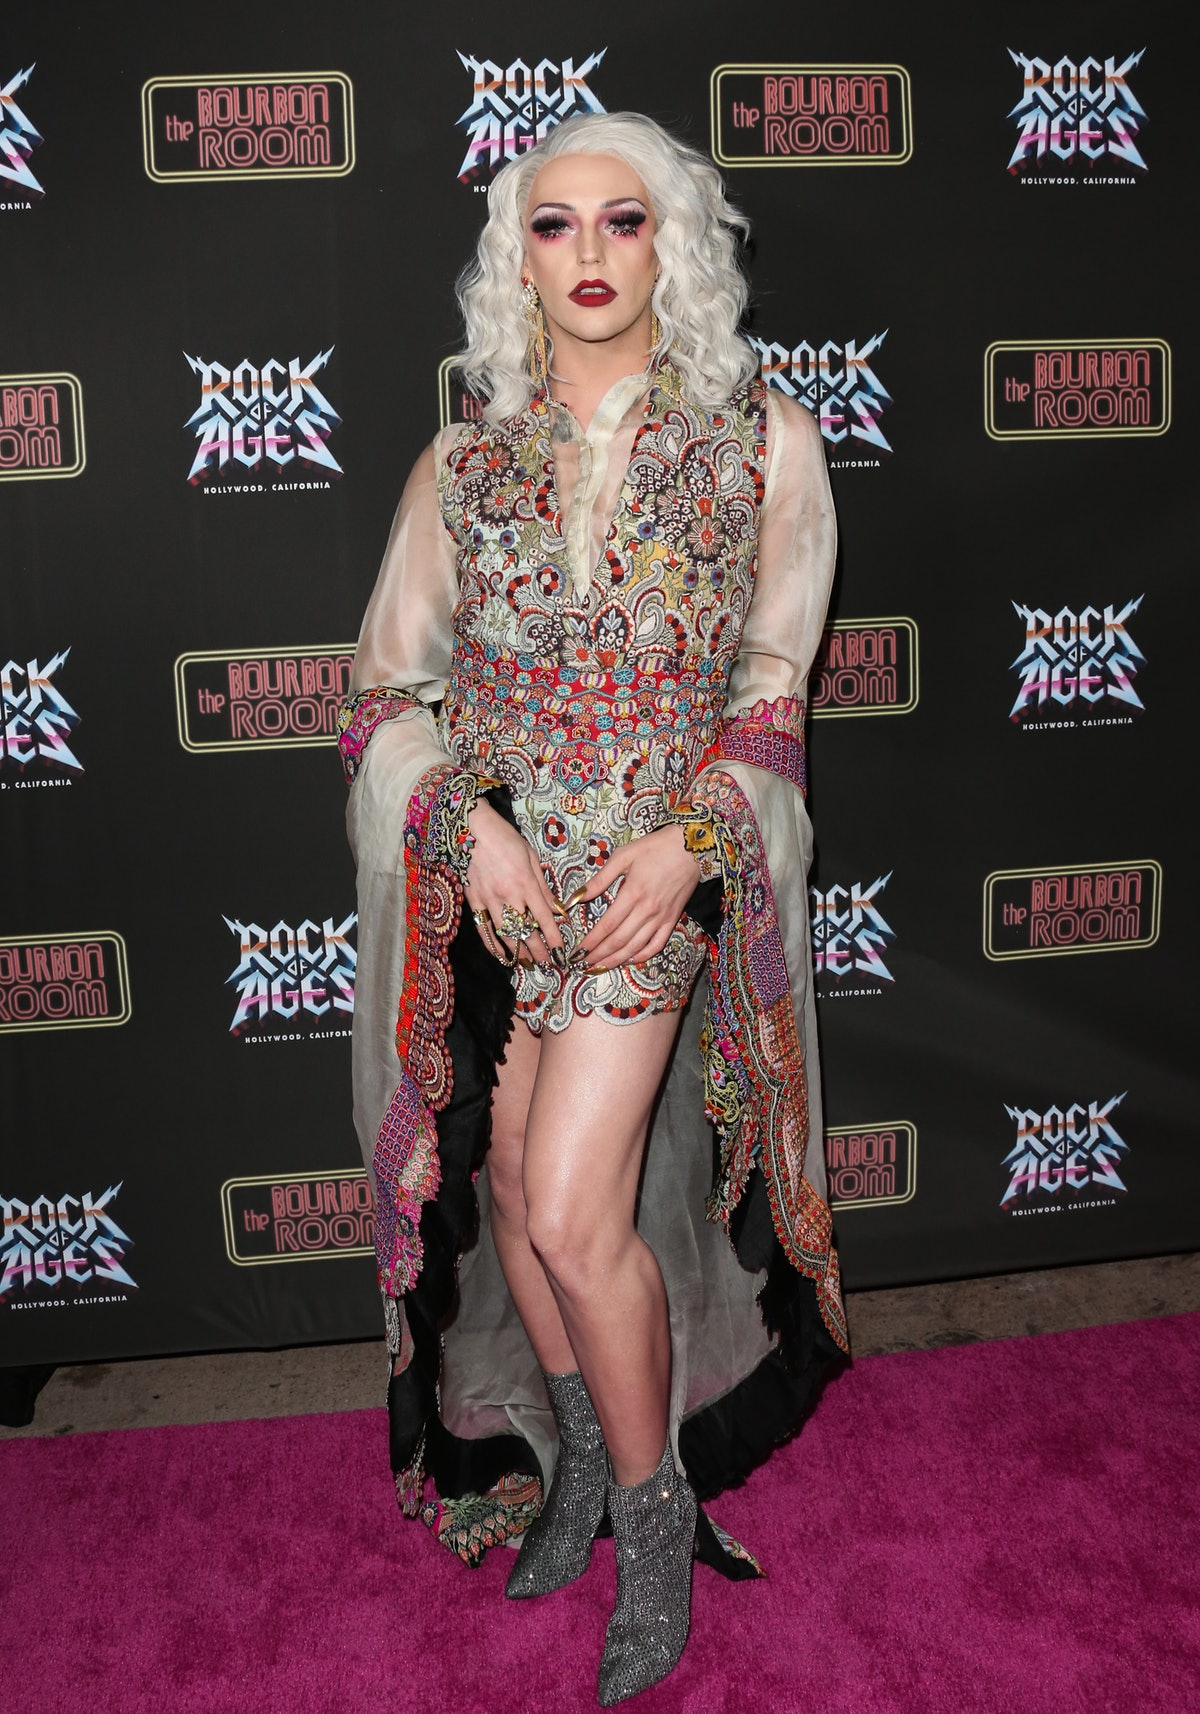 'Drag Race' star Laganja Estranja came out as trans in a new interview.